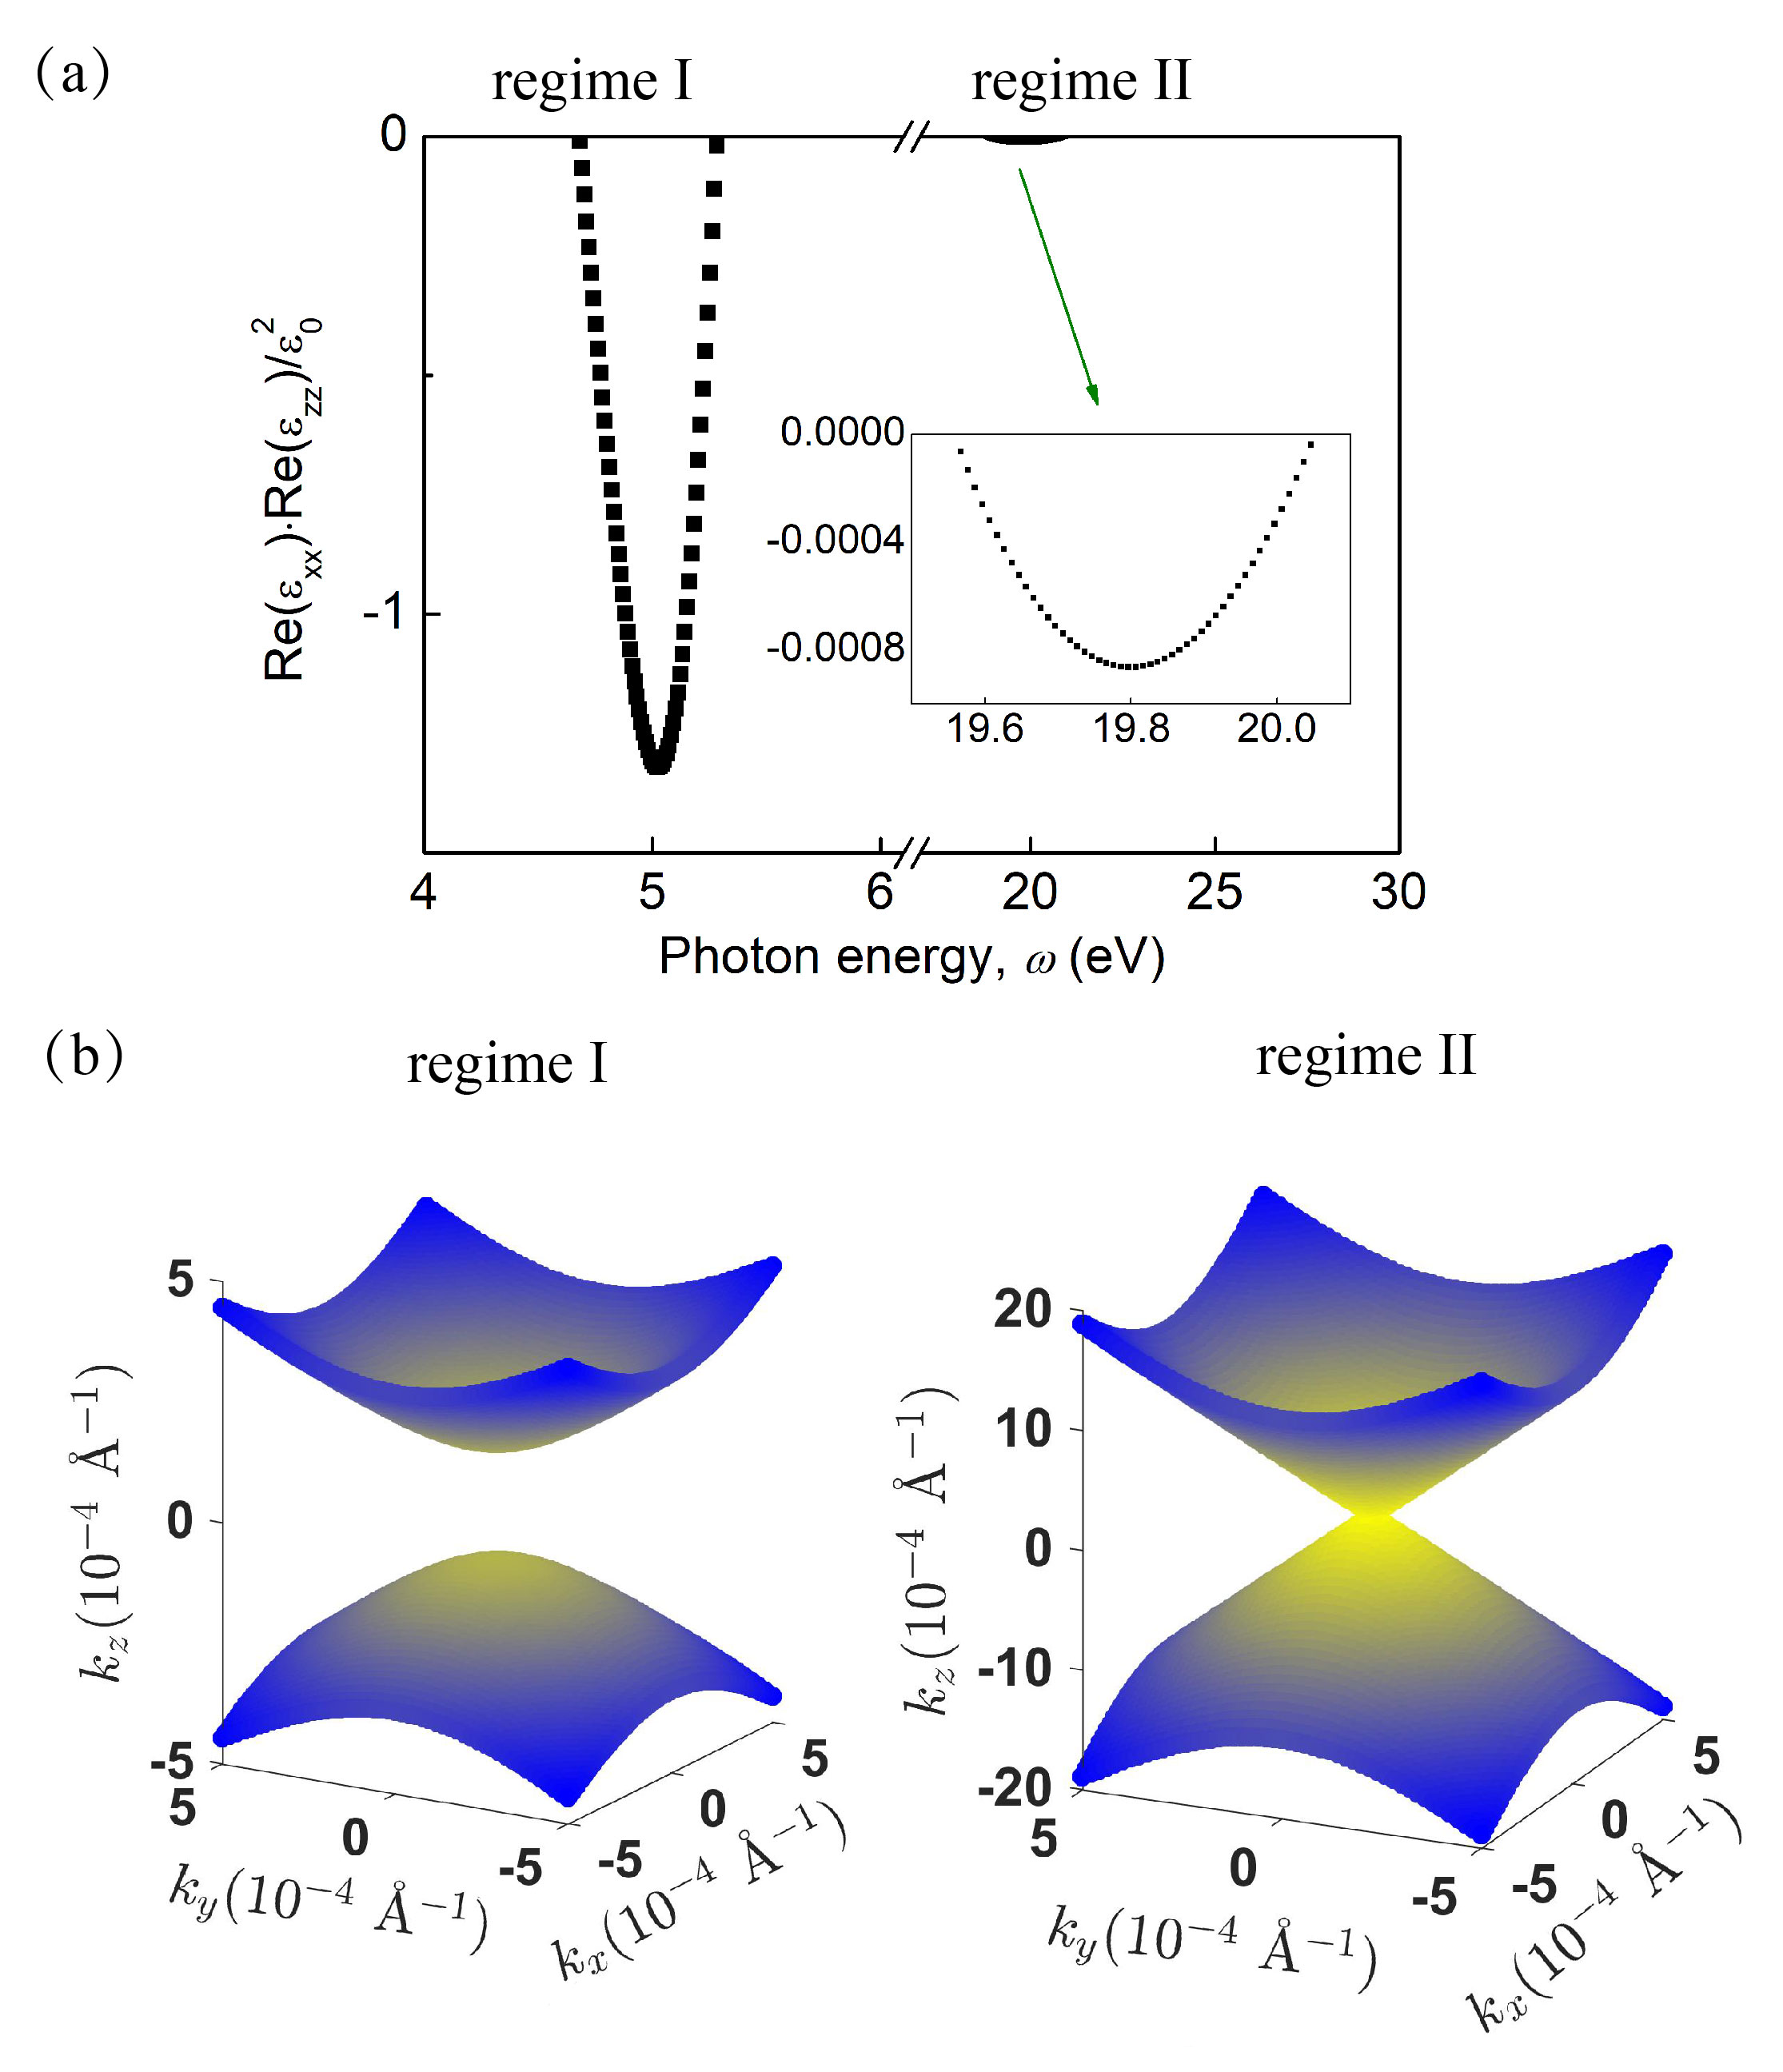 (a) Product of the in-plane and out-plane real dielectric functions shown as a function of energy; (b) Reciprocal-space representation of the constant-energy surfaces of two possible hyperbolic plasmon modes in ZrSiS, denoted as regime I (left) and II (right). The color shows the magnitude of